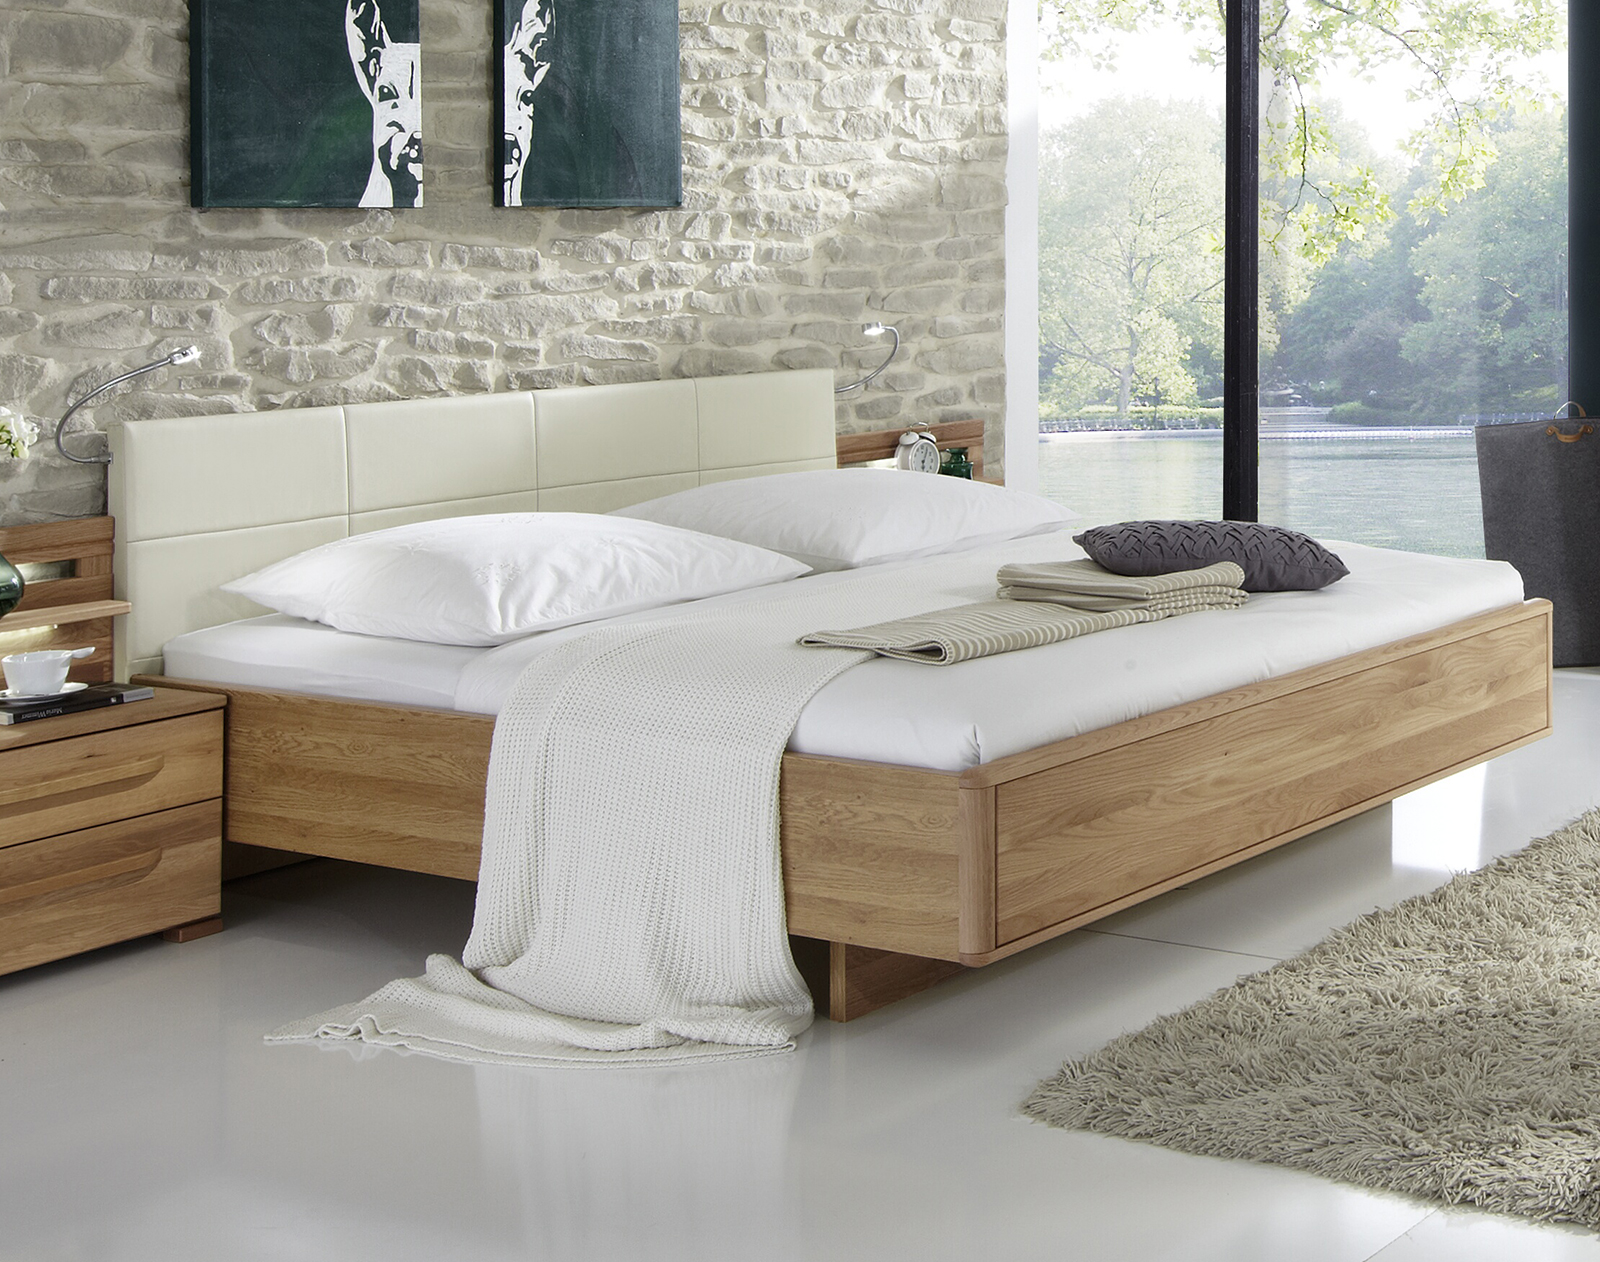 design doppelbett aus eiche mit kunstleder kopfteil morley. Black Bedroom Furniture Sets. Home Design Ideas